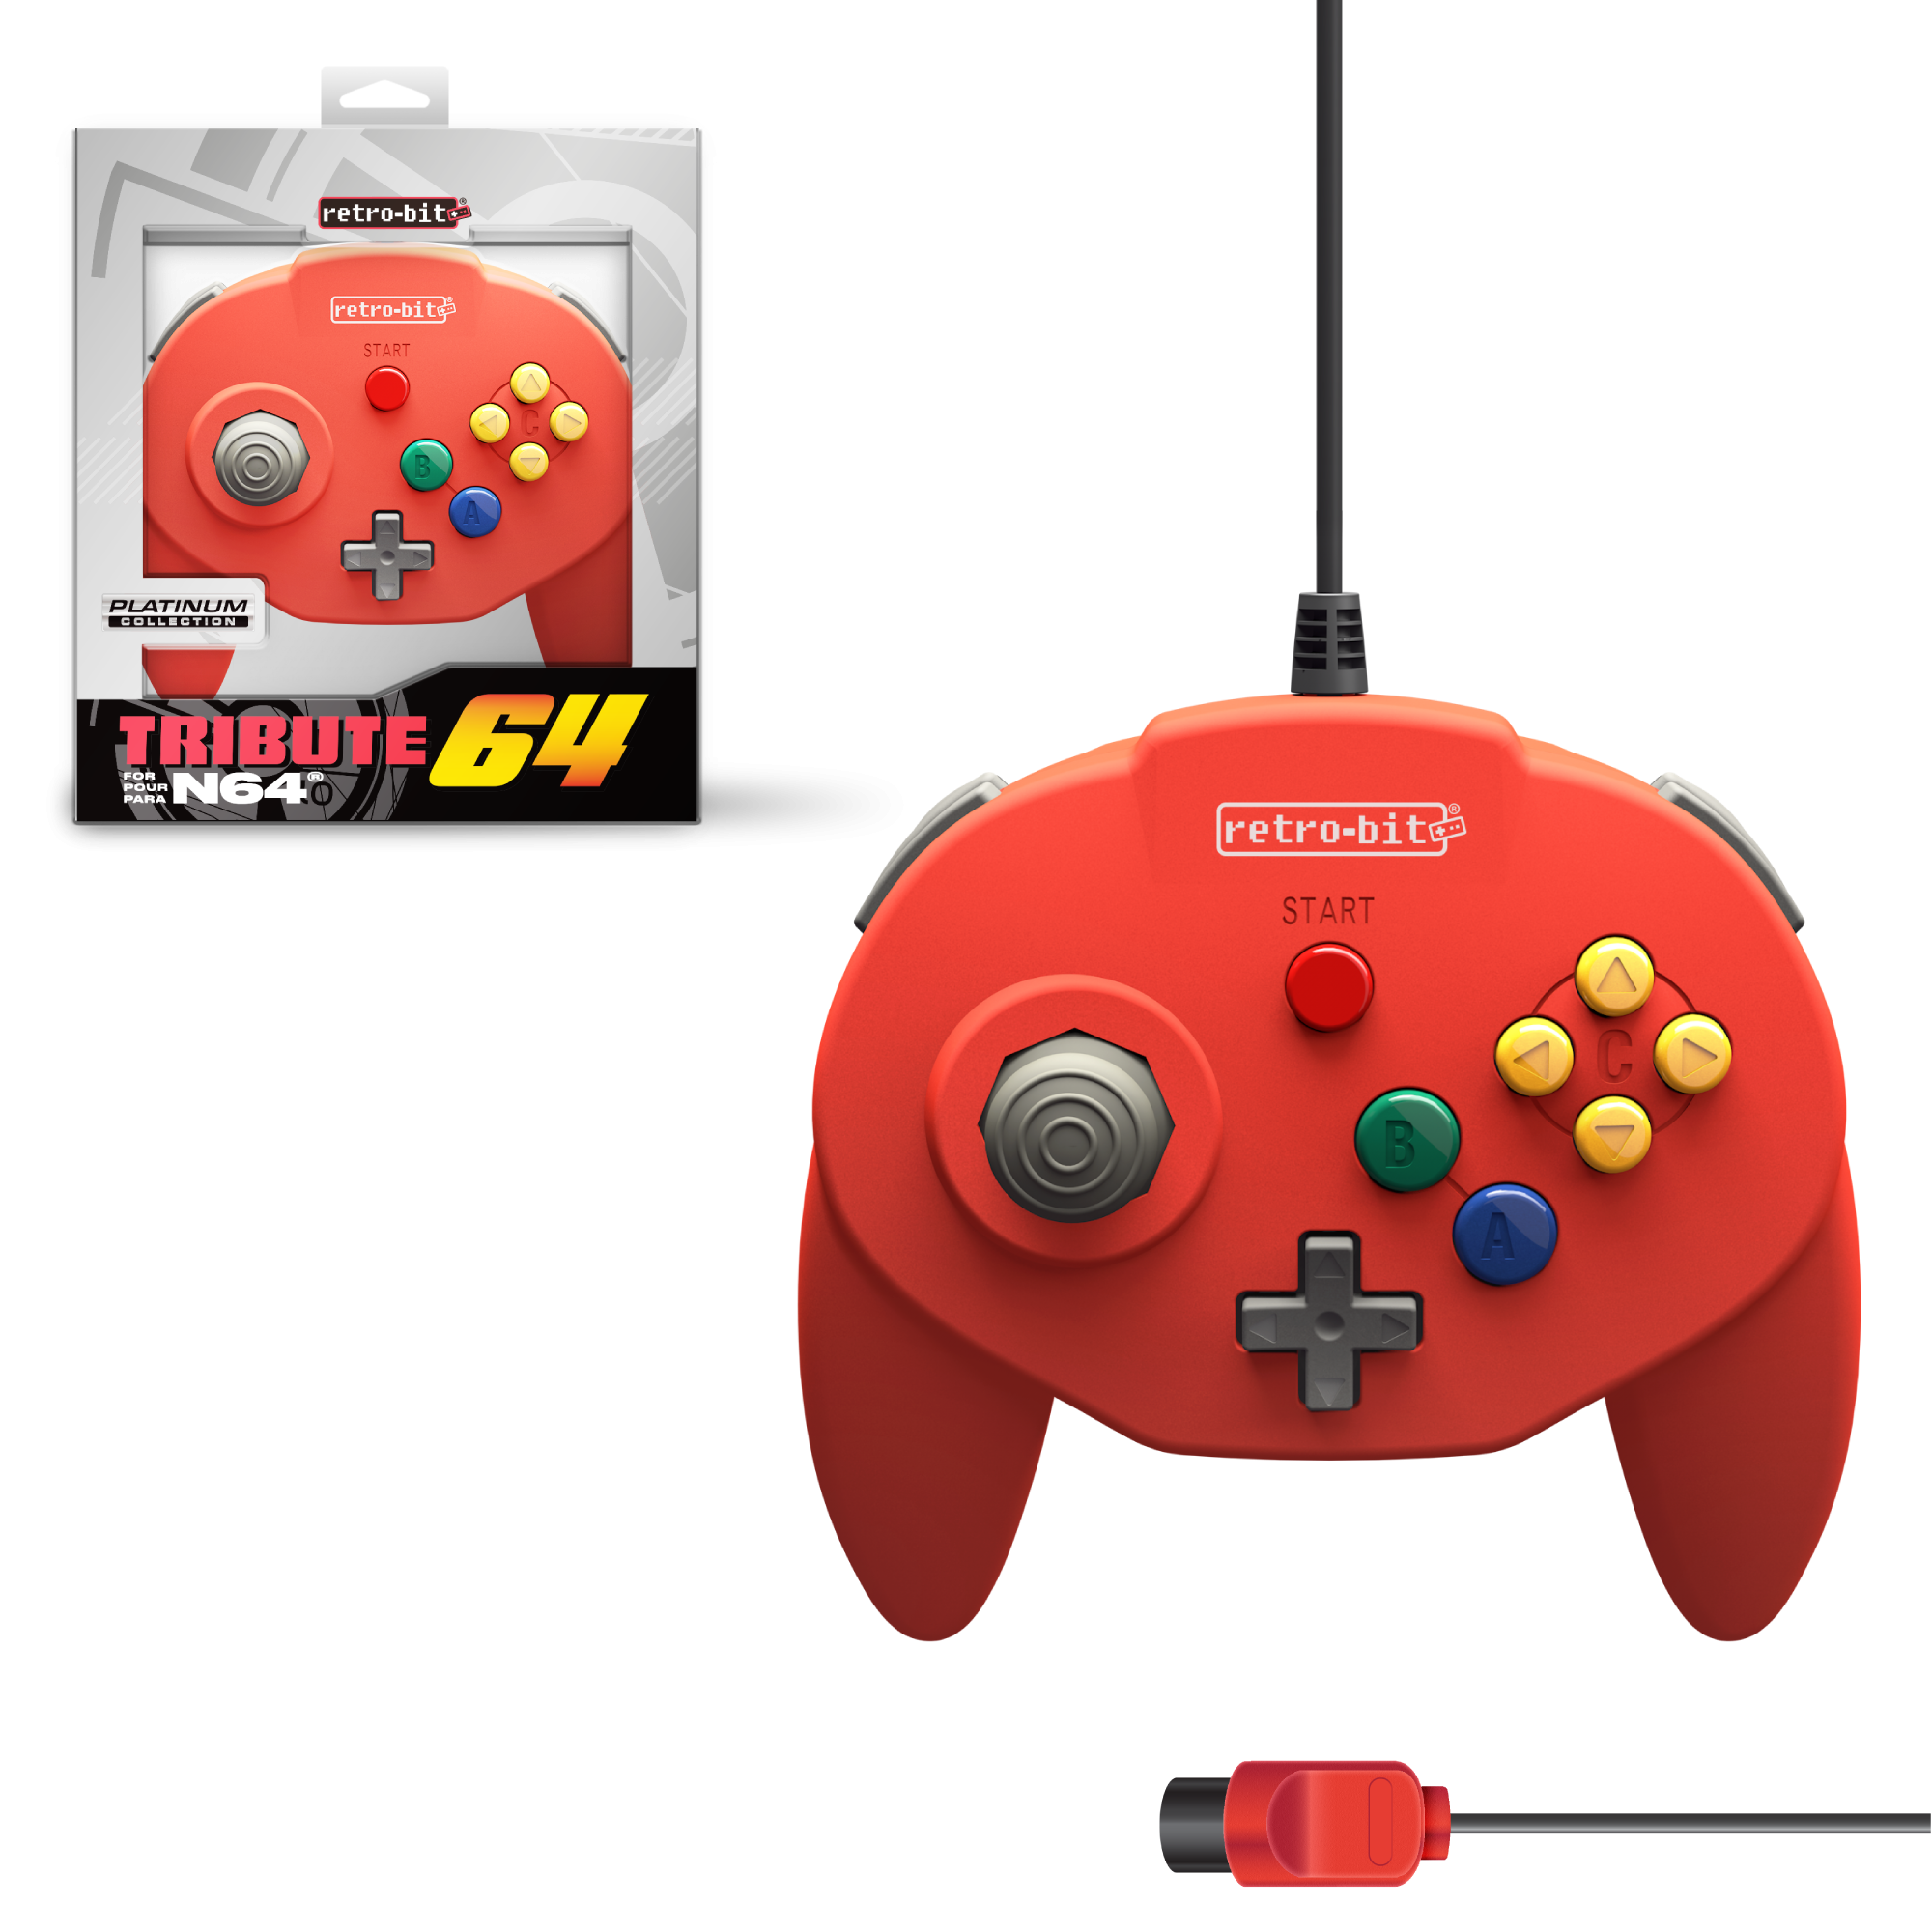 Tribute64 Red - N64 Port